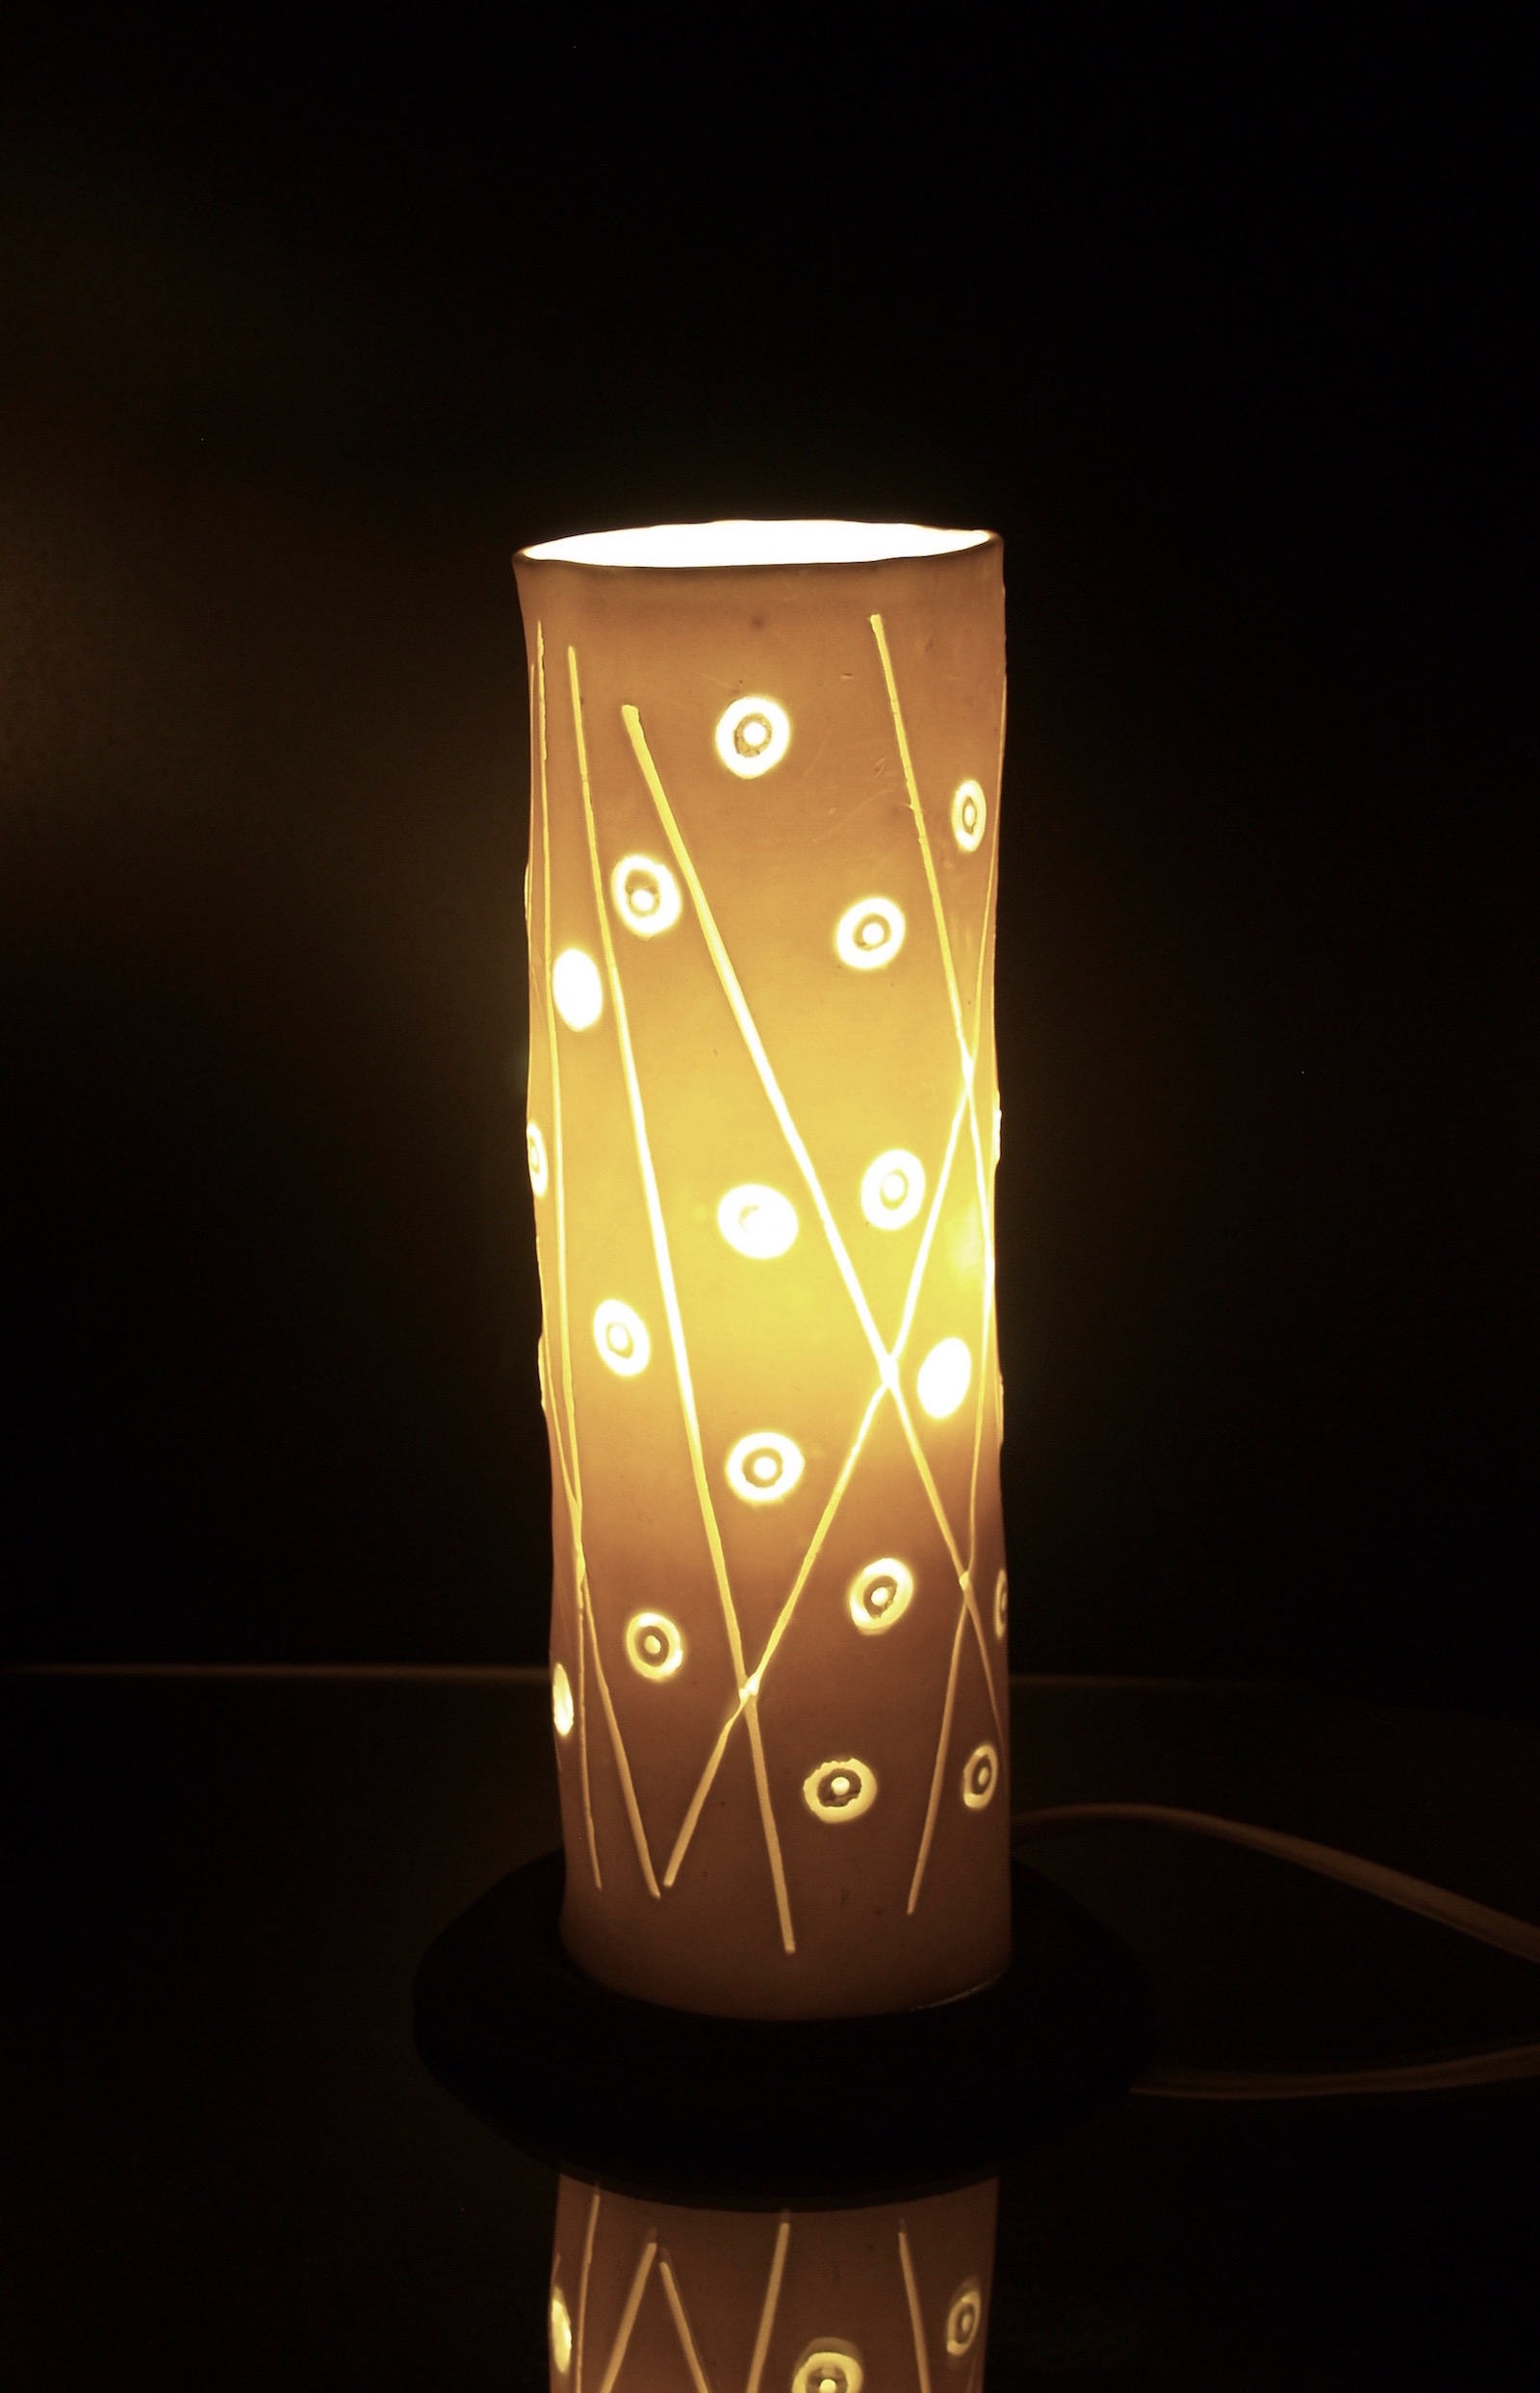 Cylinder shaped table lamp with abstract pattern of dots and lines